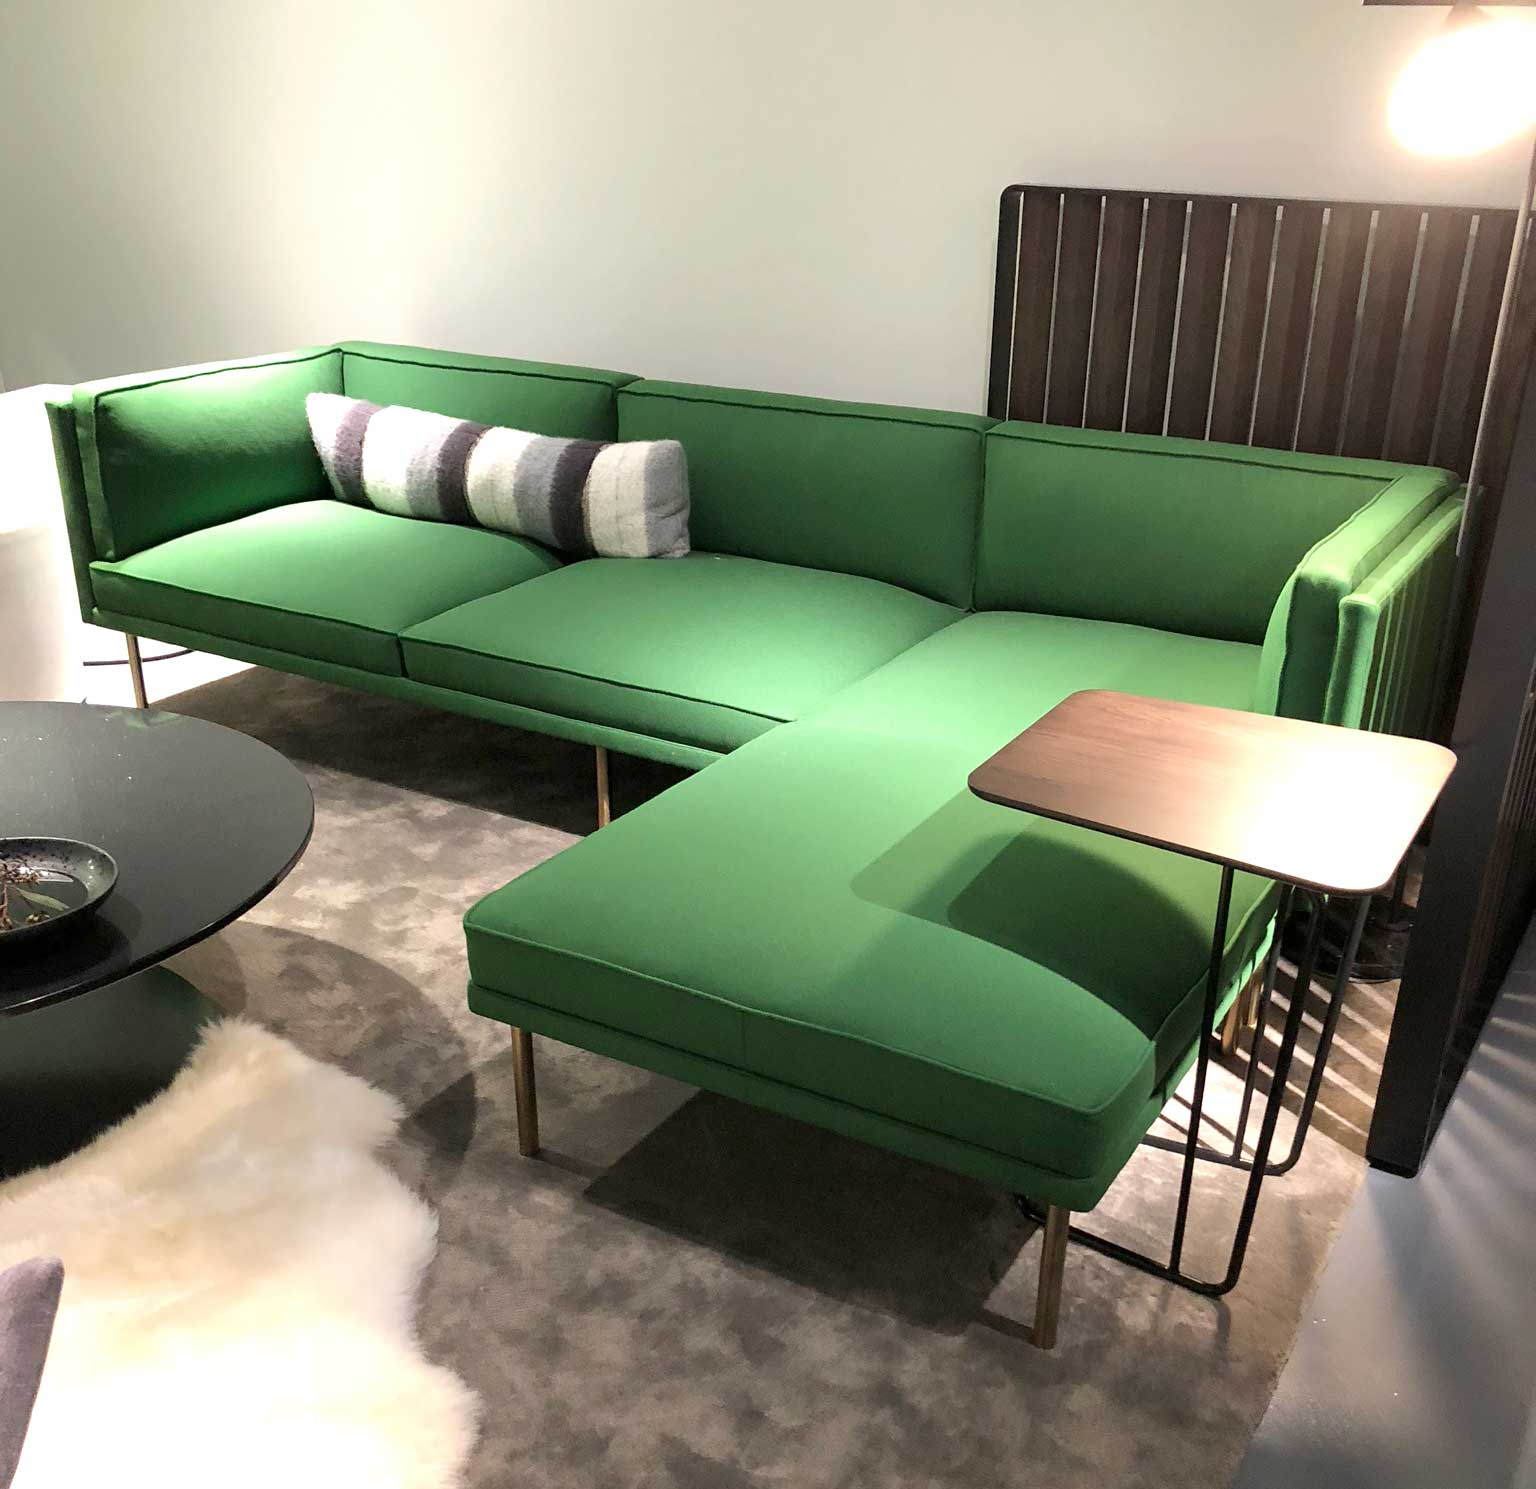 5 Trends We Saw at NeoCon 2018 from Unisource Solutions - 3. streamlined furniture